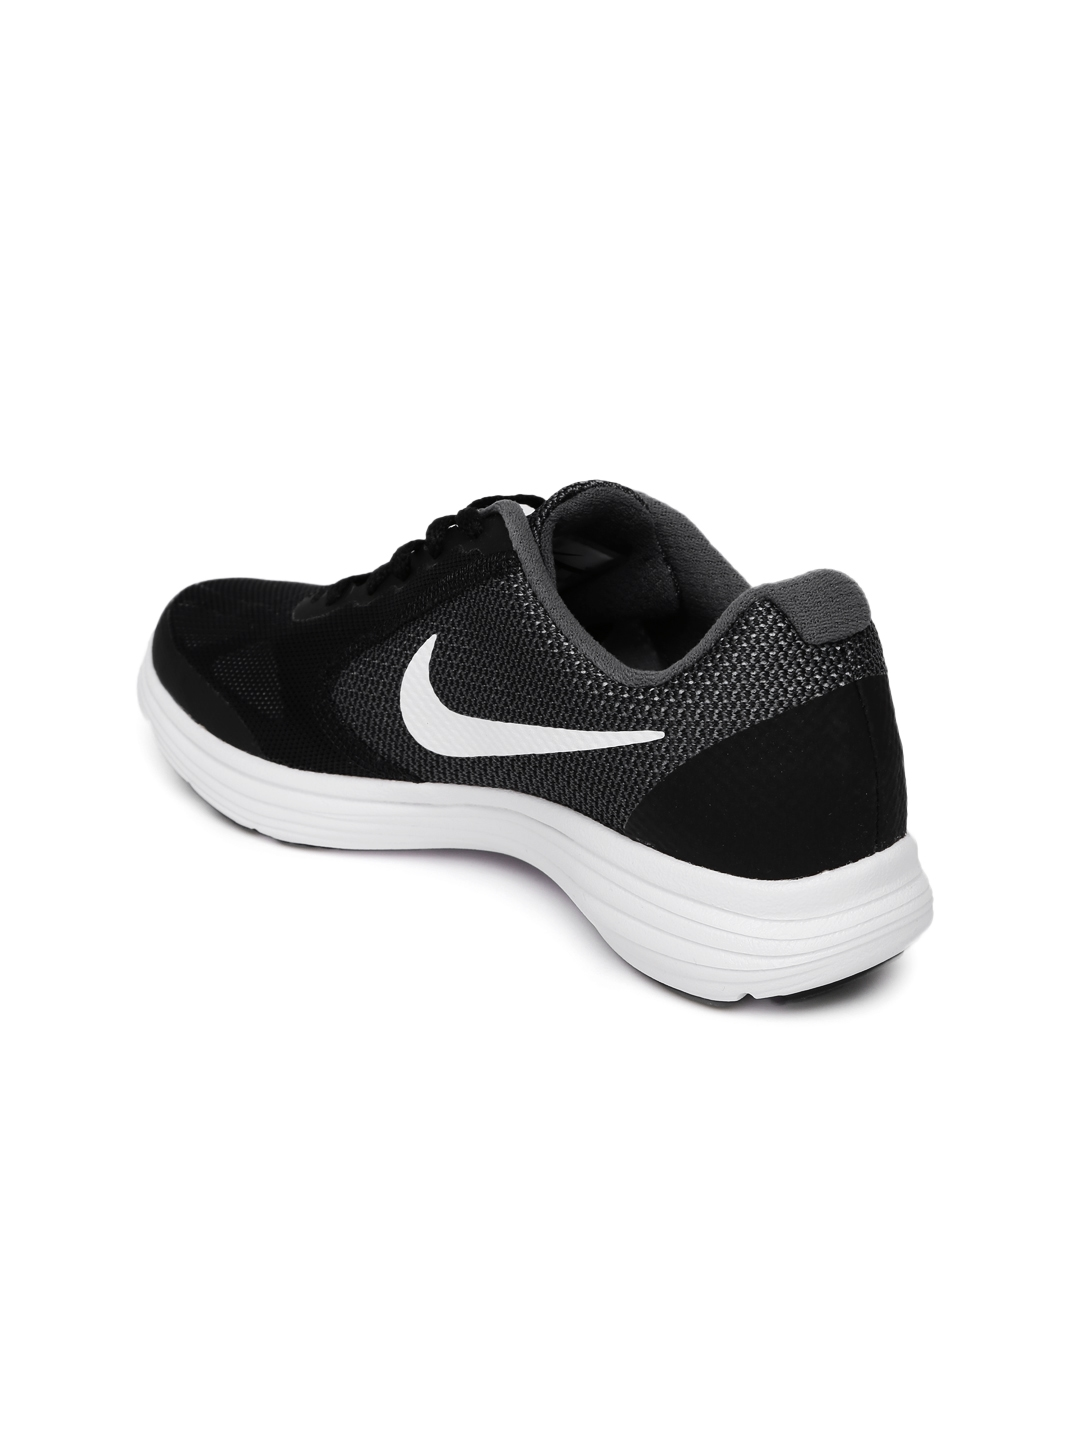 4a69be9869f Buy Nike Boys Charcoal Grey   Black Revolution 3 (GS) Running Shoes ...